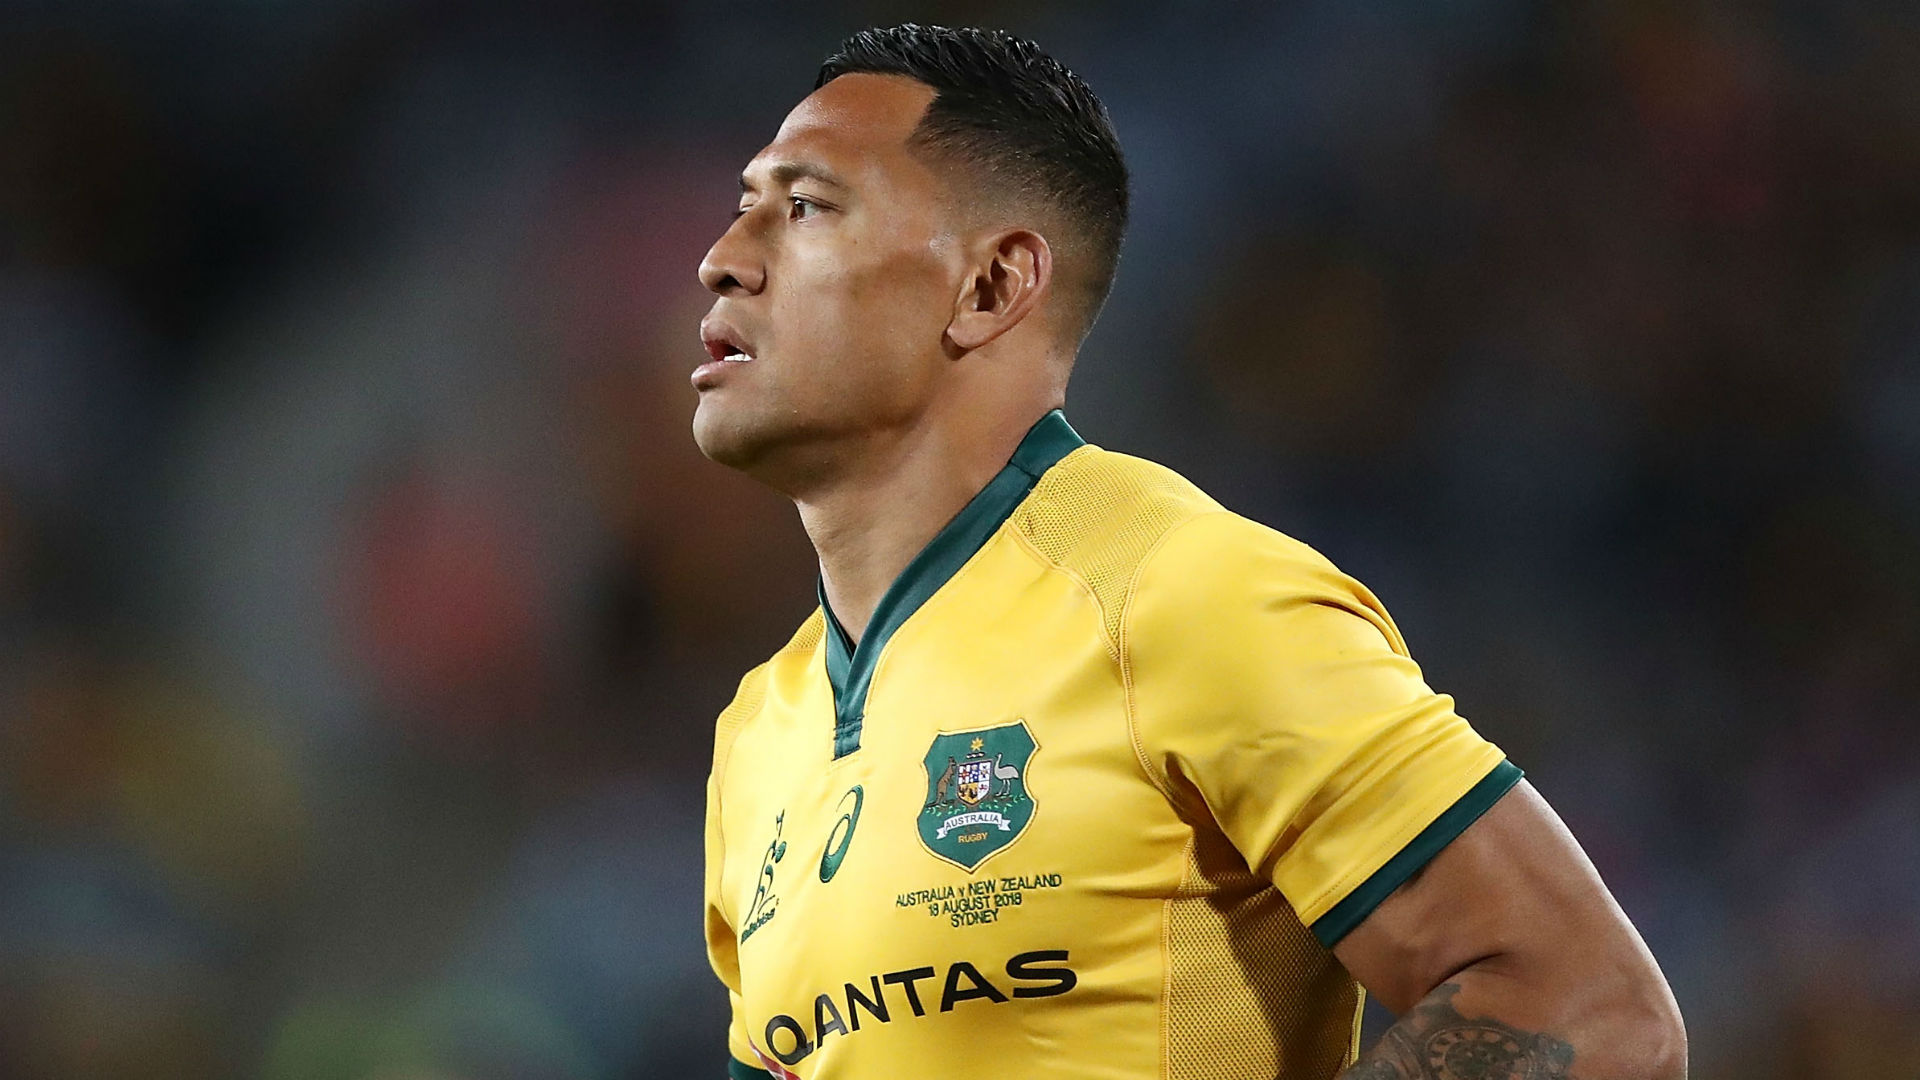 Folau 'saddened' and considering his options after Rugby Australia sacking